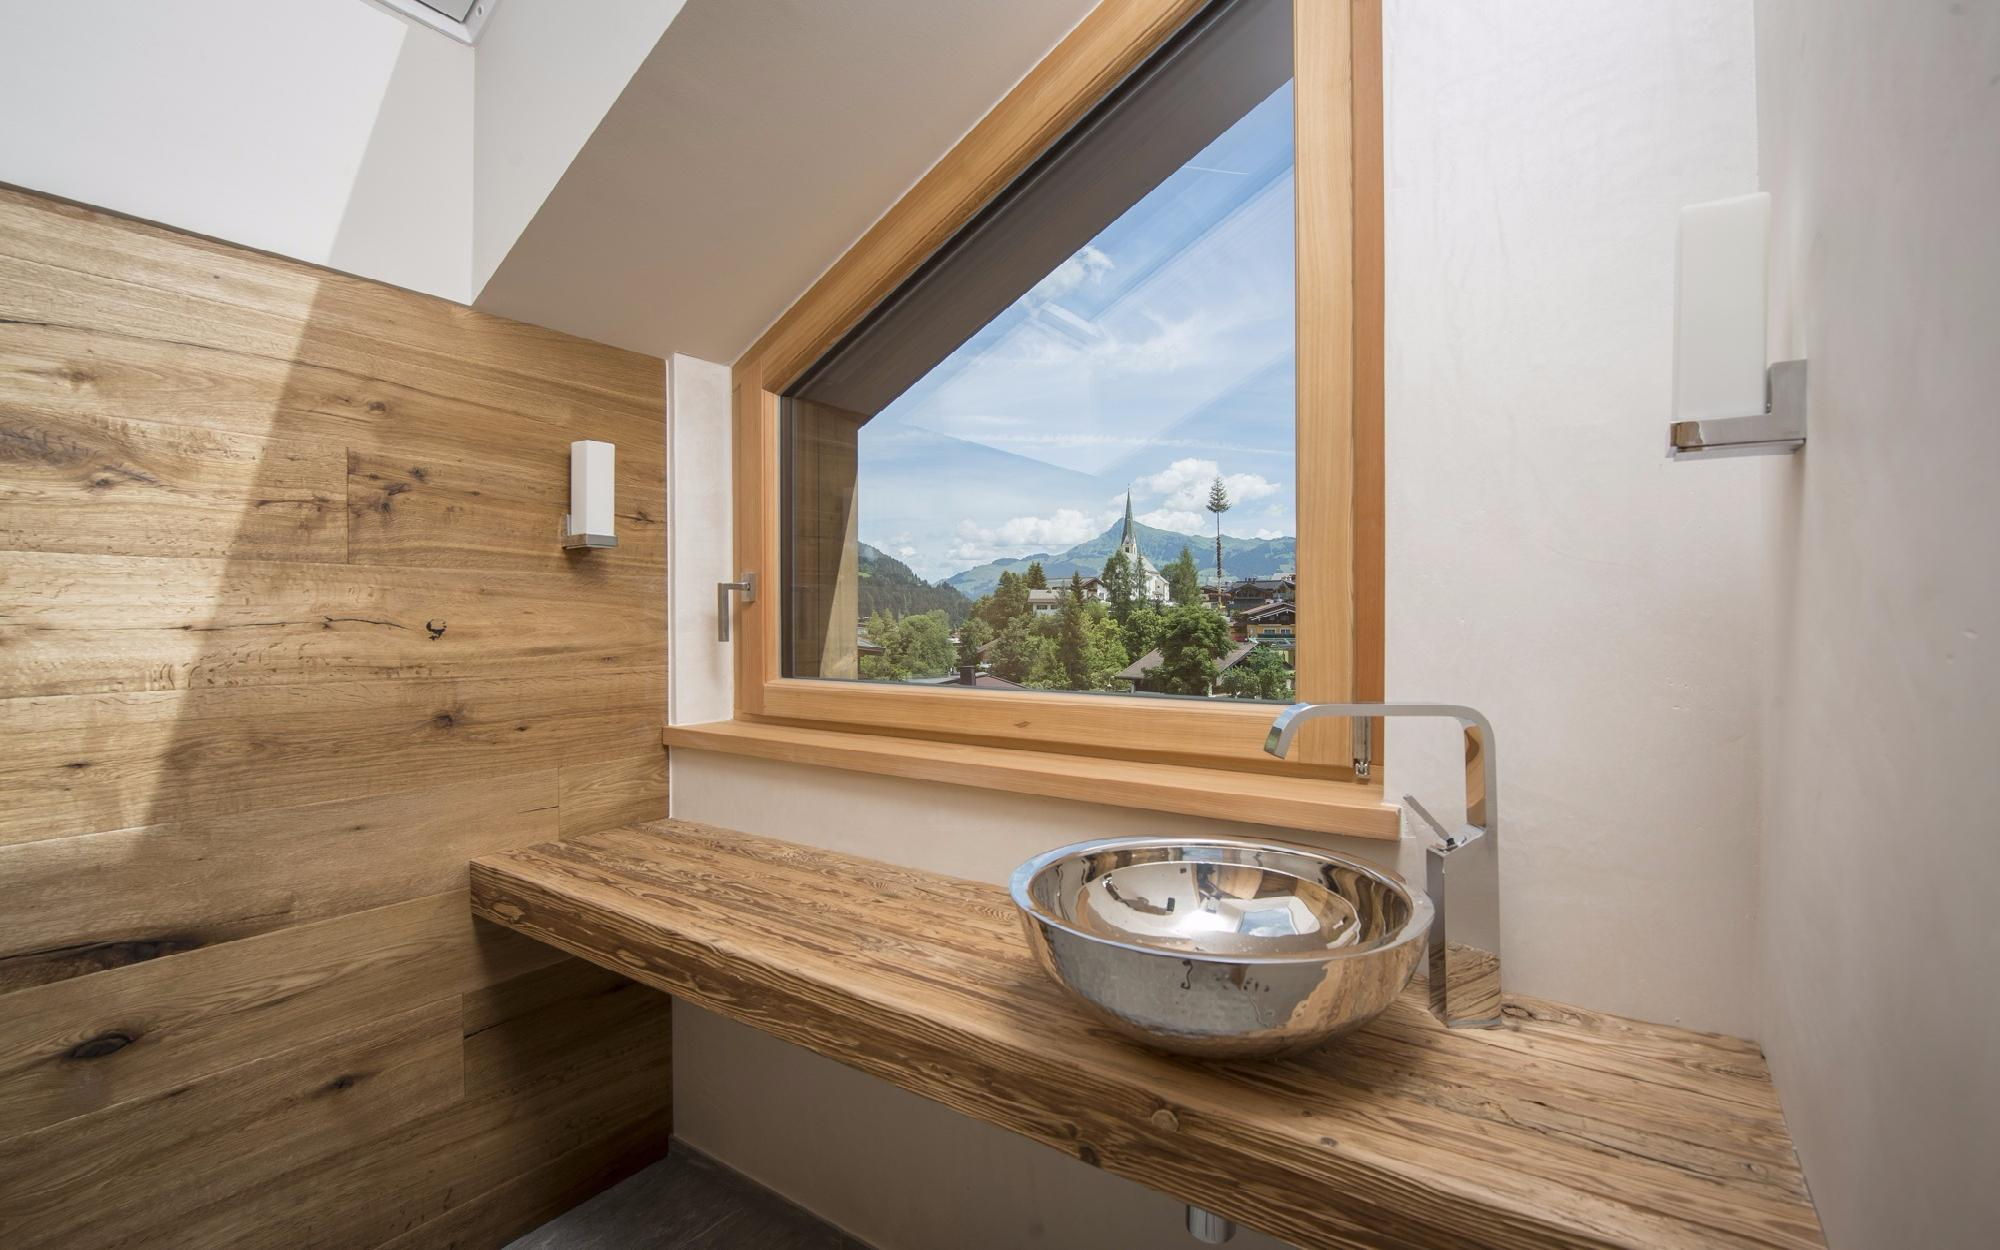 Exclusive Lifestyle Apartment near Kitzbuehel for Sale